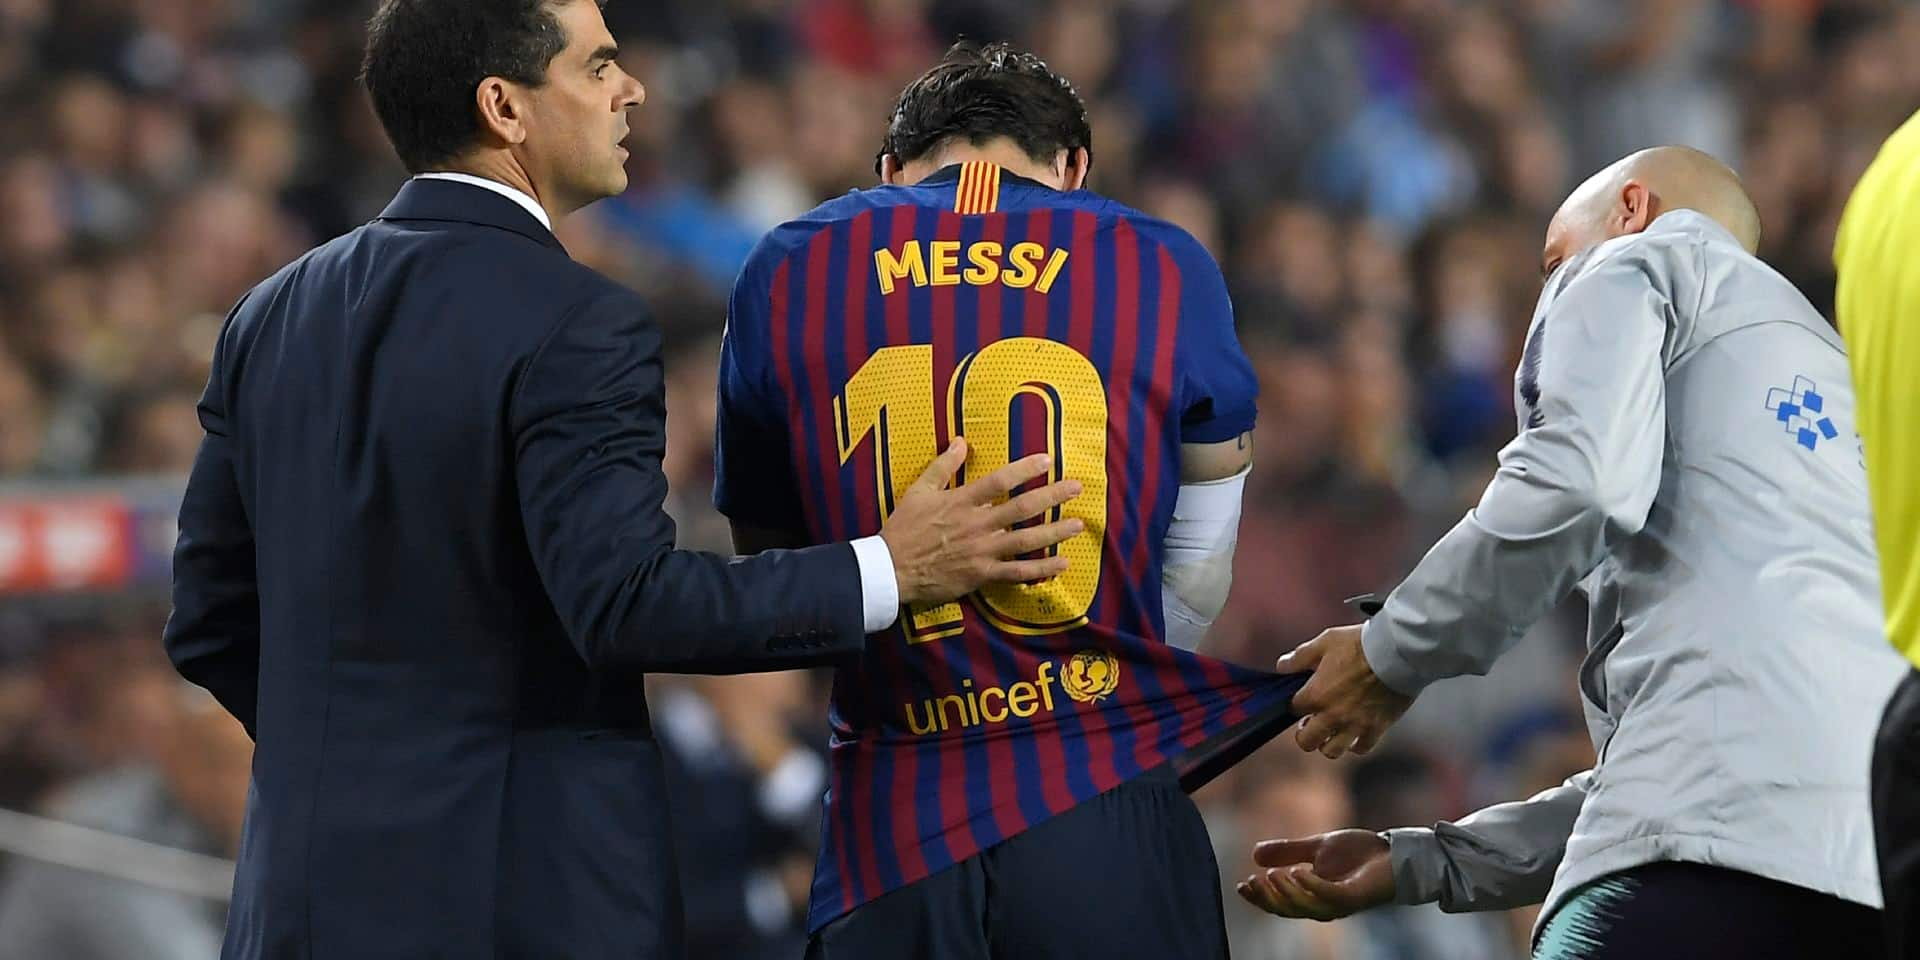 Blessé face à Séville, Lionel Messi connait la durée de son absence (VIDEO)